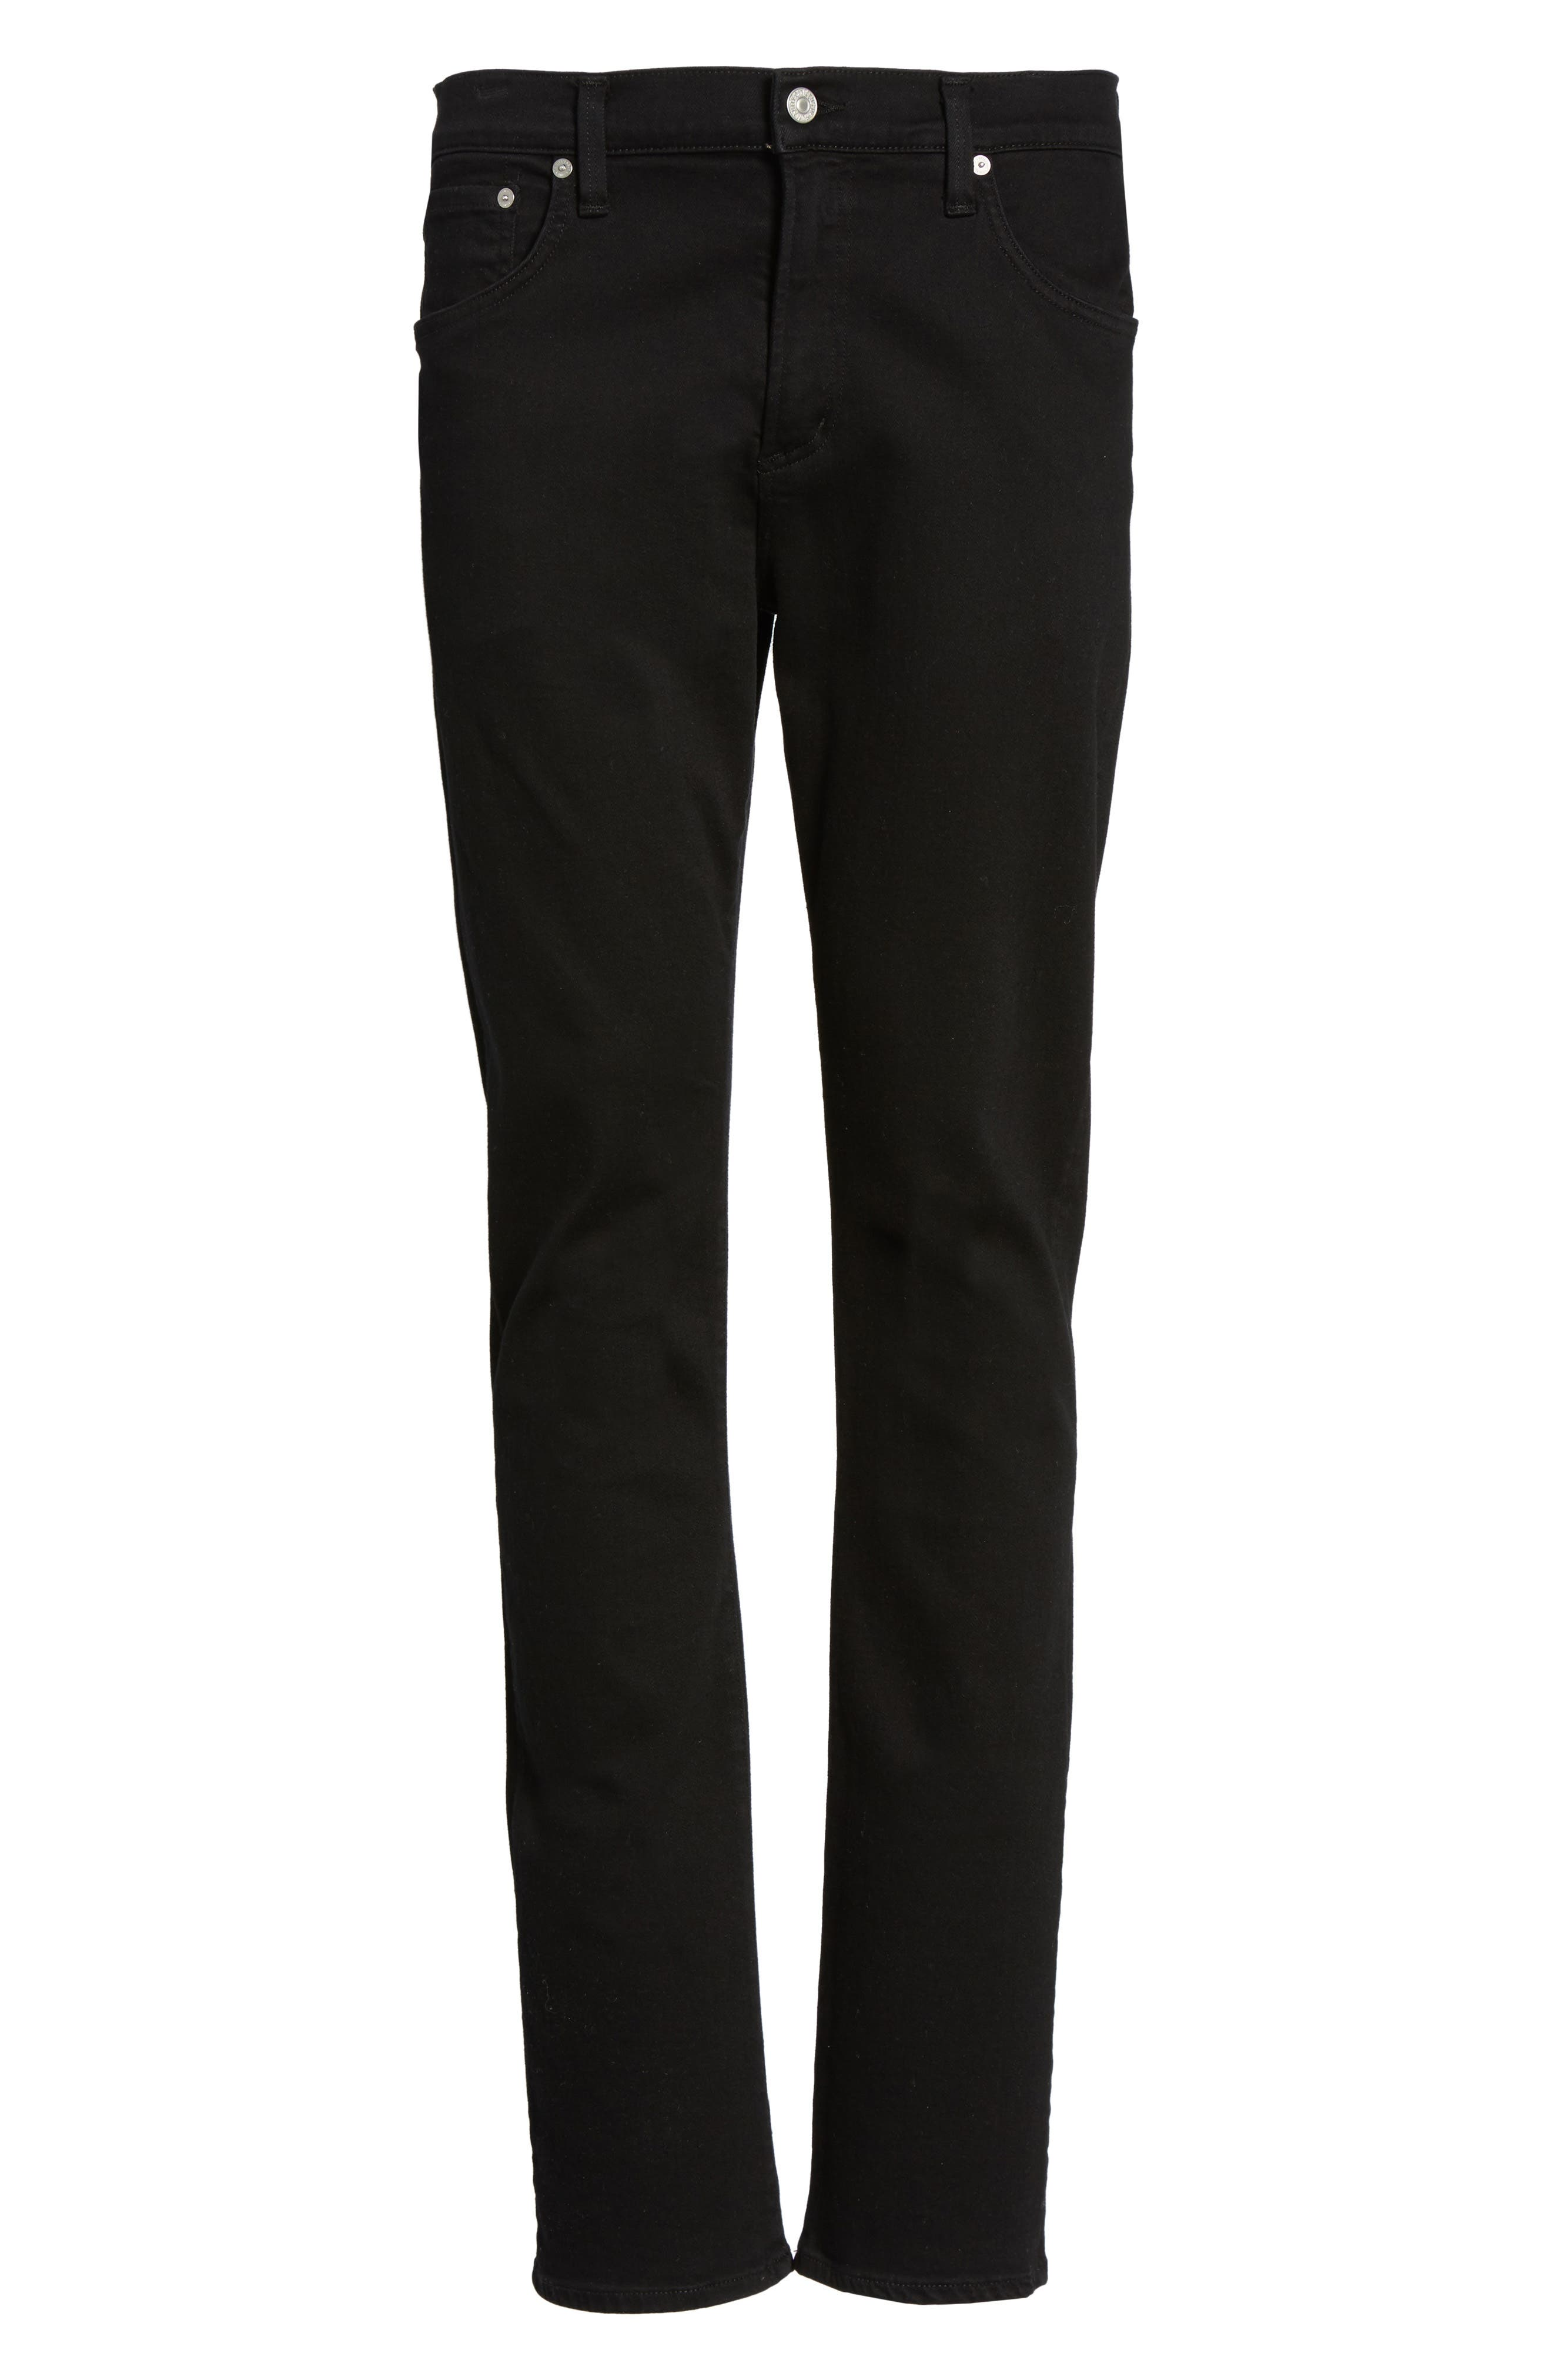 CITIZENS OF HUMANITY,                             PERFORM - Gage Slim Straight Leg Jeans,                             Alternate thumbnail 6, color,                             PARKER